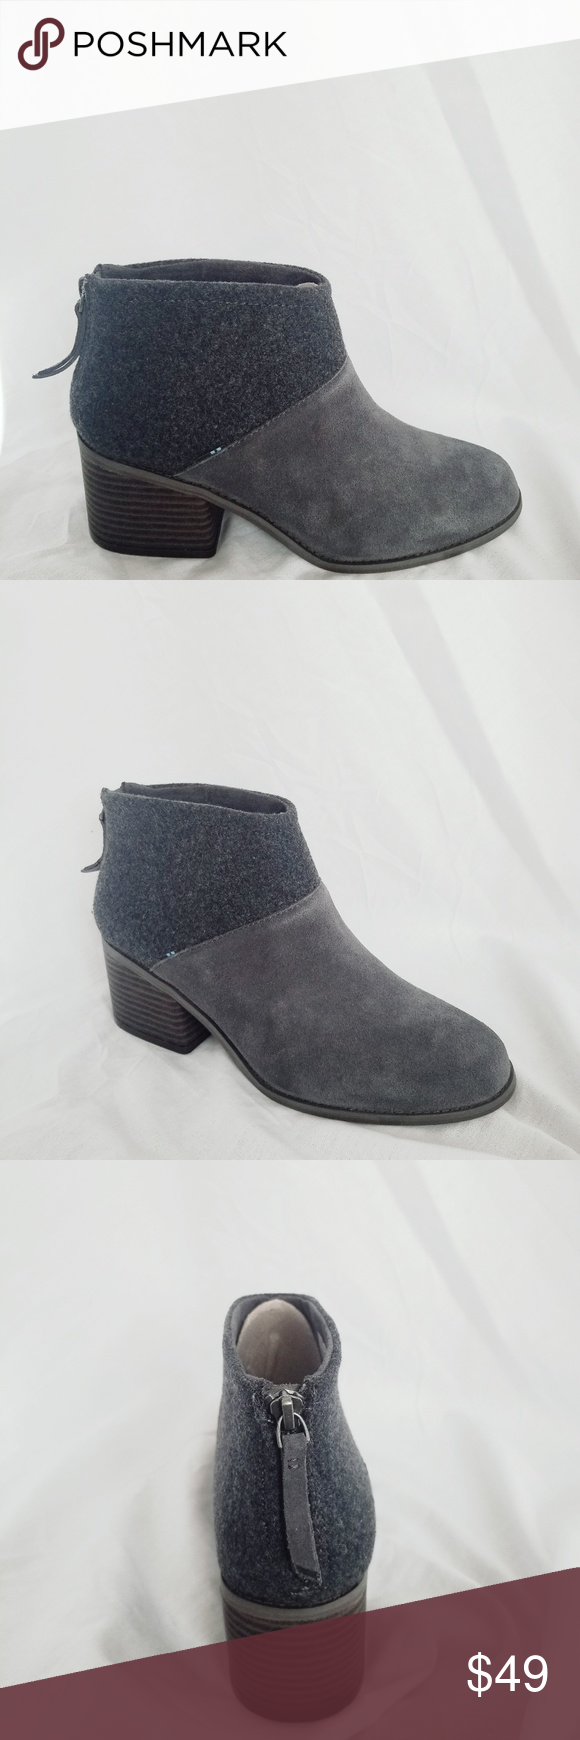 07882b2b5db NEW TOMS Lacy Boot Gray TOMS Style  Lacy Booties Color  Forged Iron Forged  iron